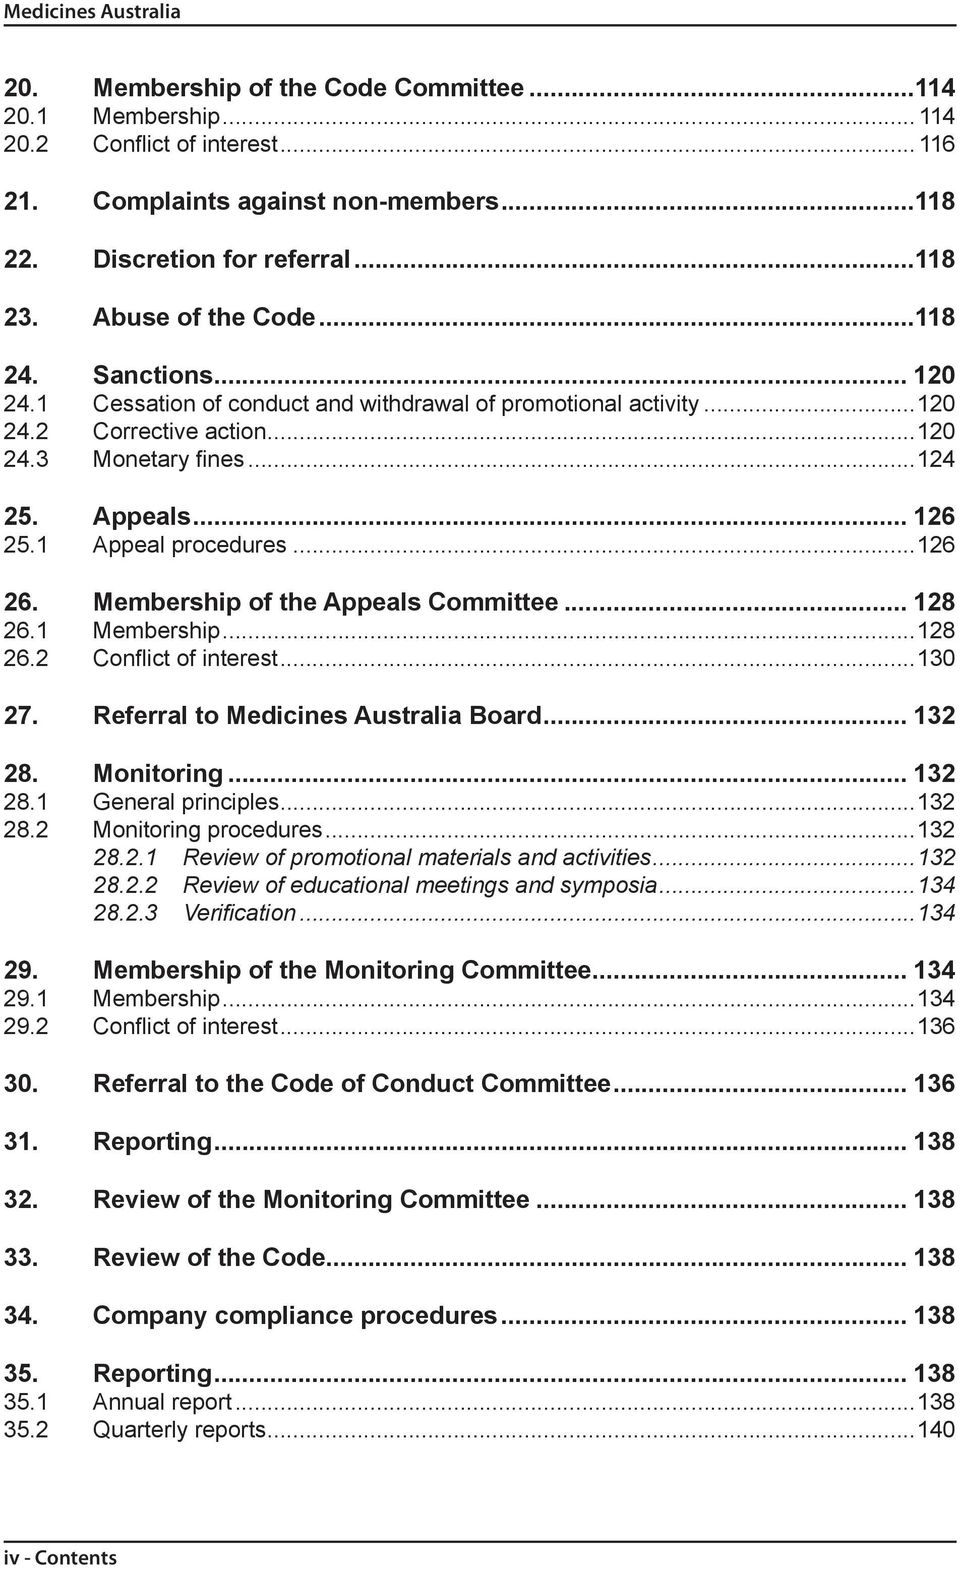 1 Appeal procedures...126 26. Membership of the Appeals Committee... 128 26.1 Membership...128 26.2 Conflict of interest...130 27. Referral to Medicines Australia Board... 132 28. Monitoring... 132 28.1 General principles.